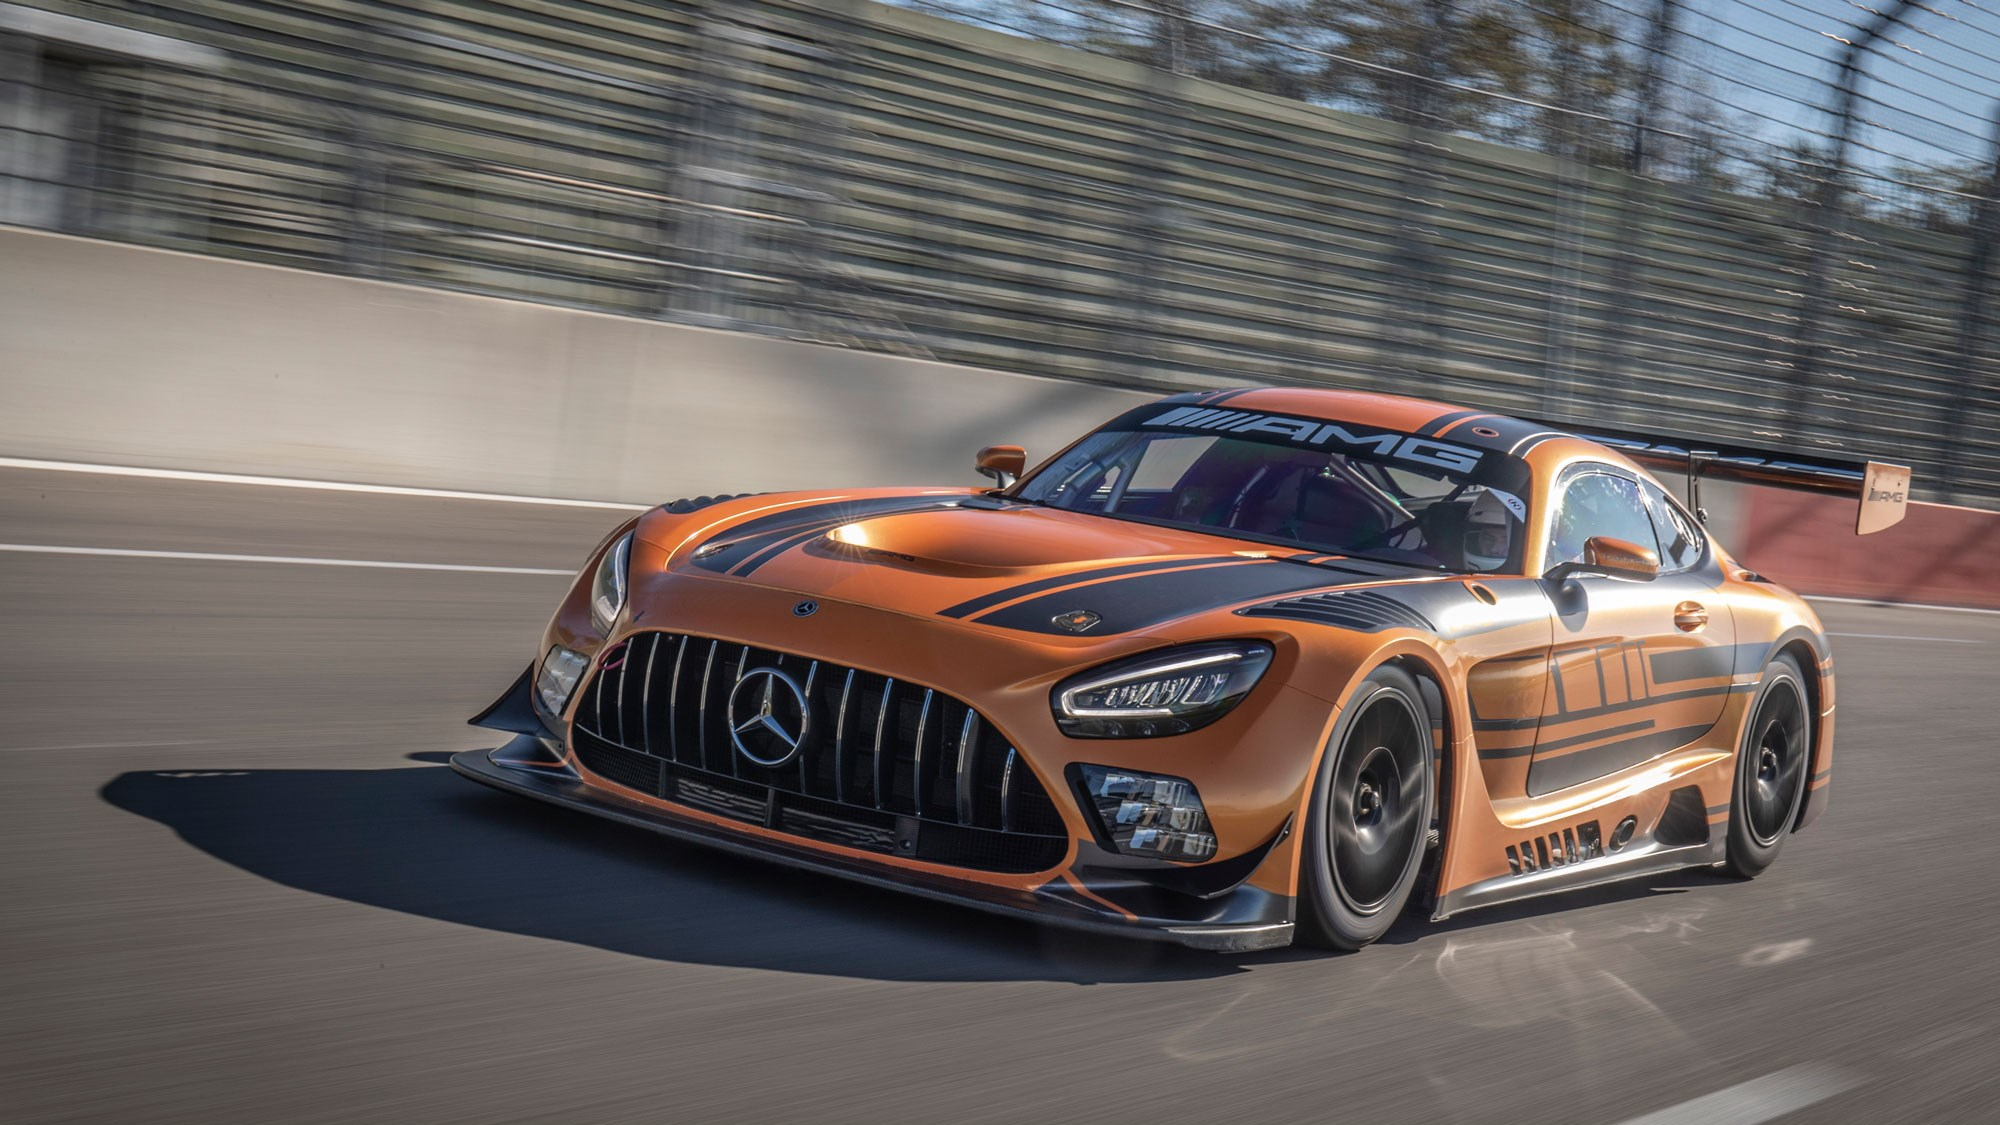 Mercedes-AMG GT3 review: friendly monster